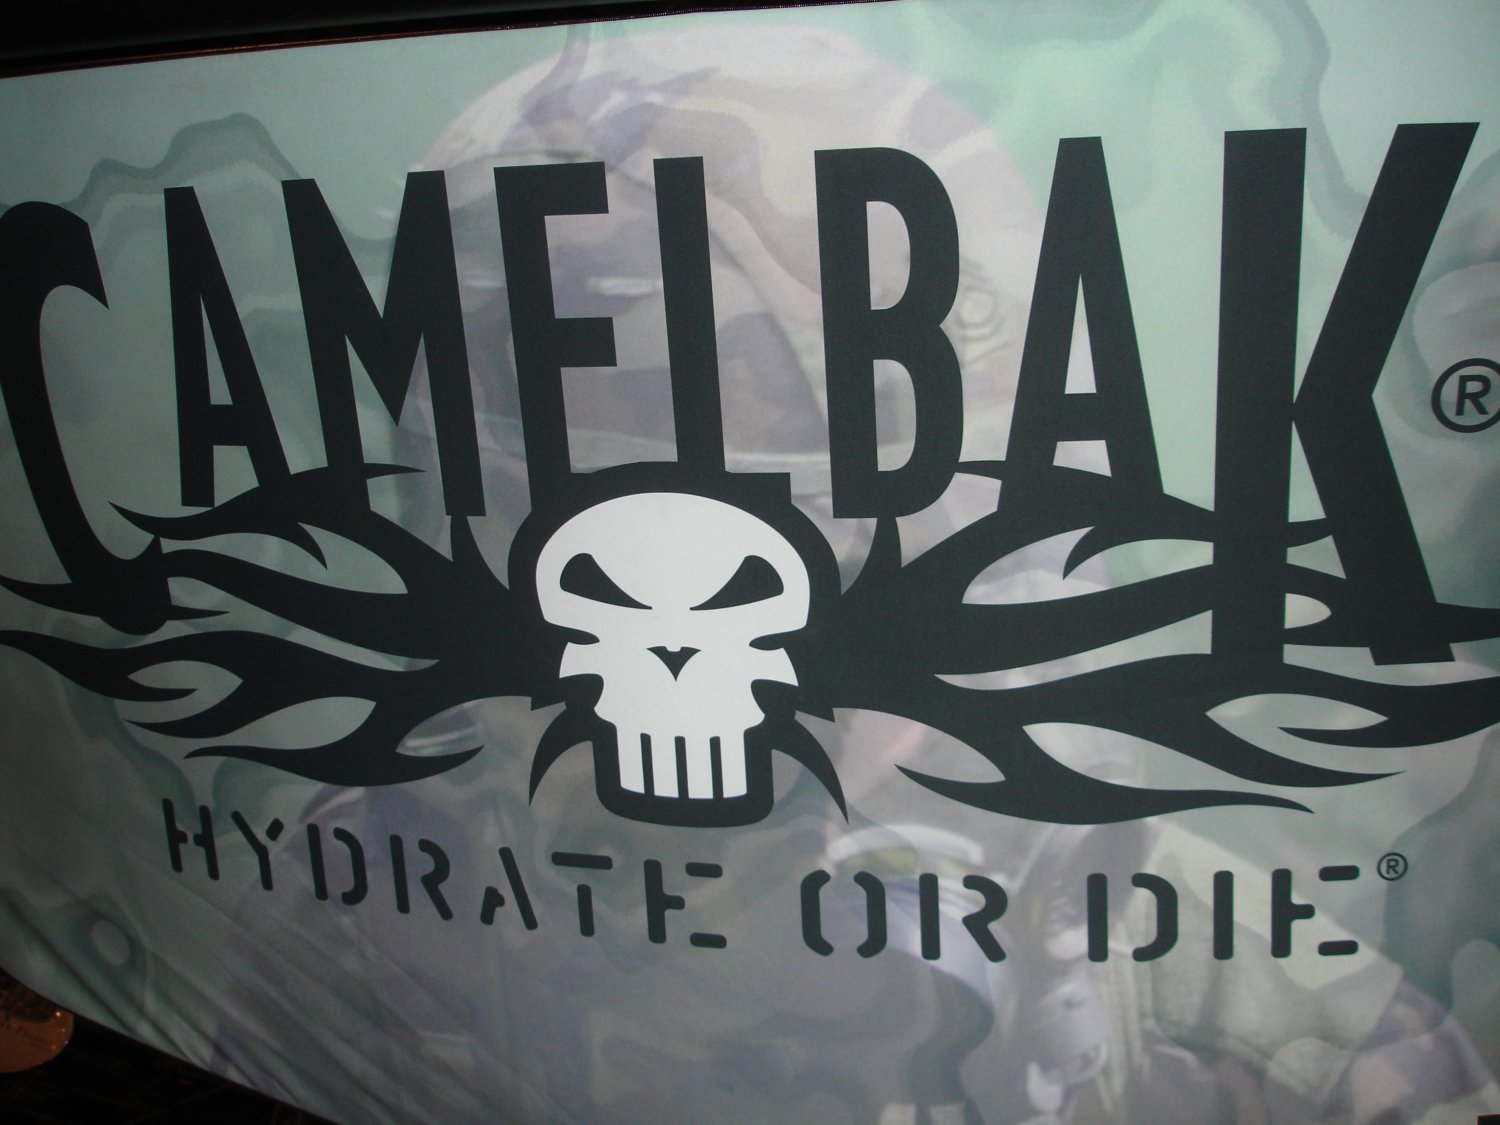 Camelbak%20%27Hydrate%20or%20Die%27 1 <!  :en  >CamelBak Gears Up for U.S. Military SPECOPS and Chemical/Biological Warfare<!  :  >